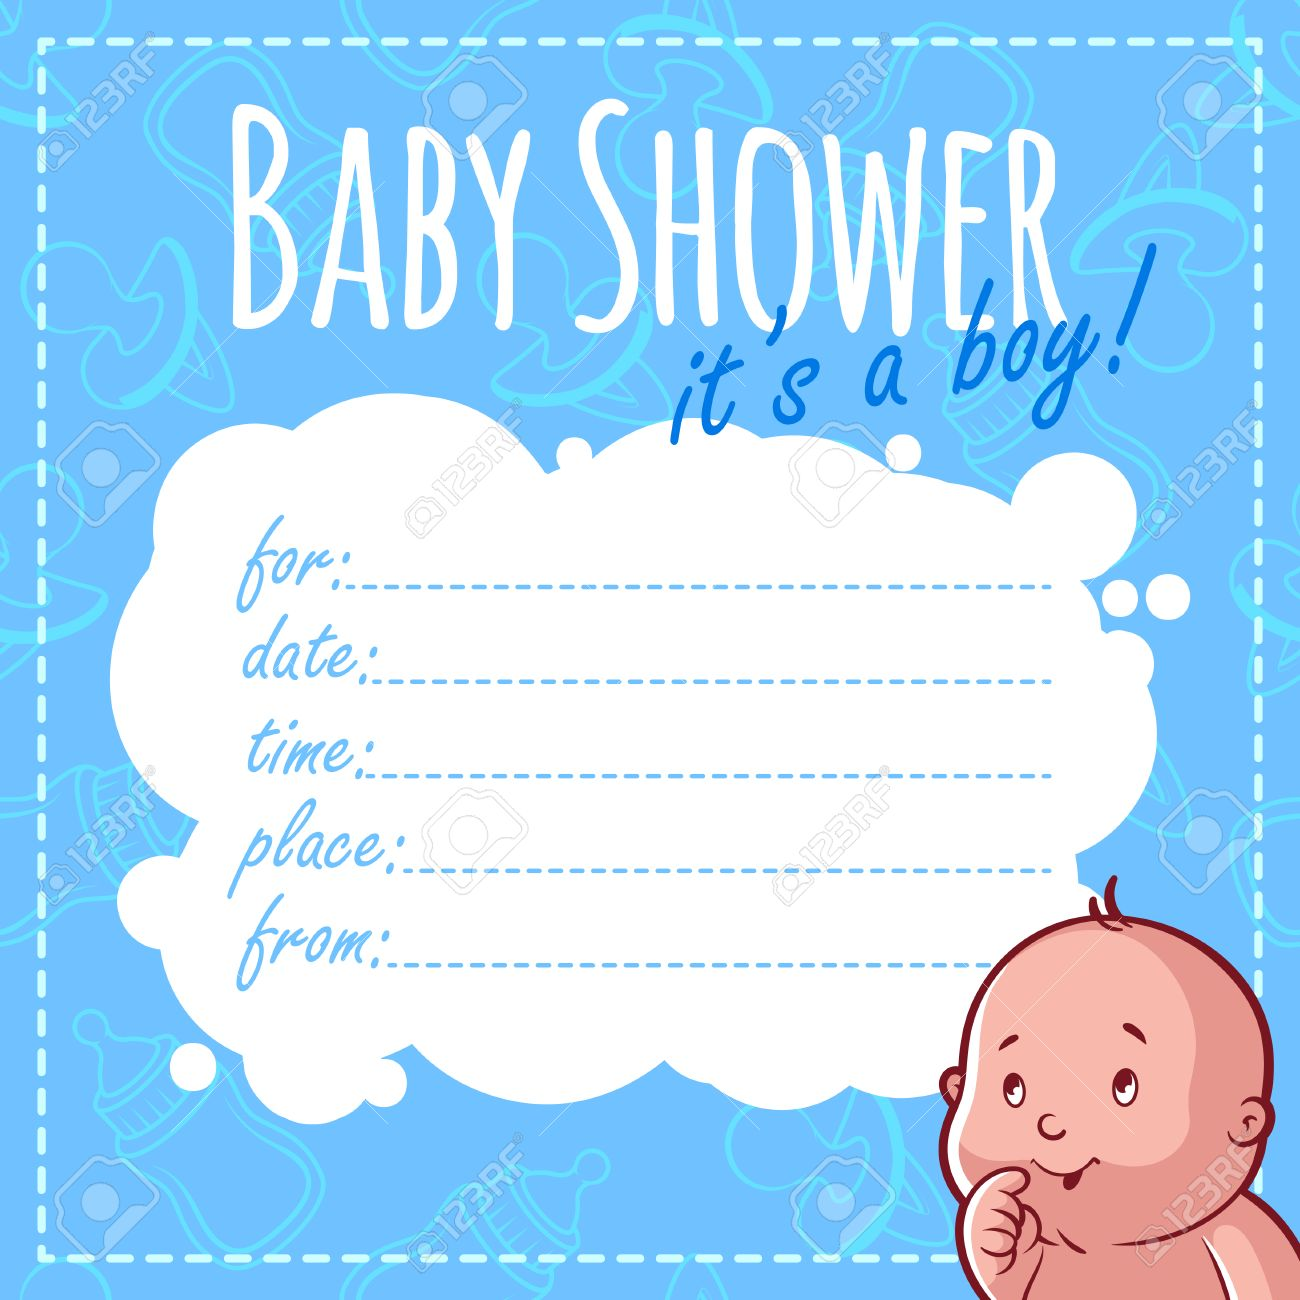 Baby Shower Card Its A Boy Blank Baby Shower Invitations For – Baby Shower Invitation Cards for Boys